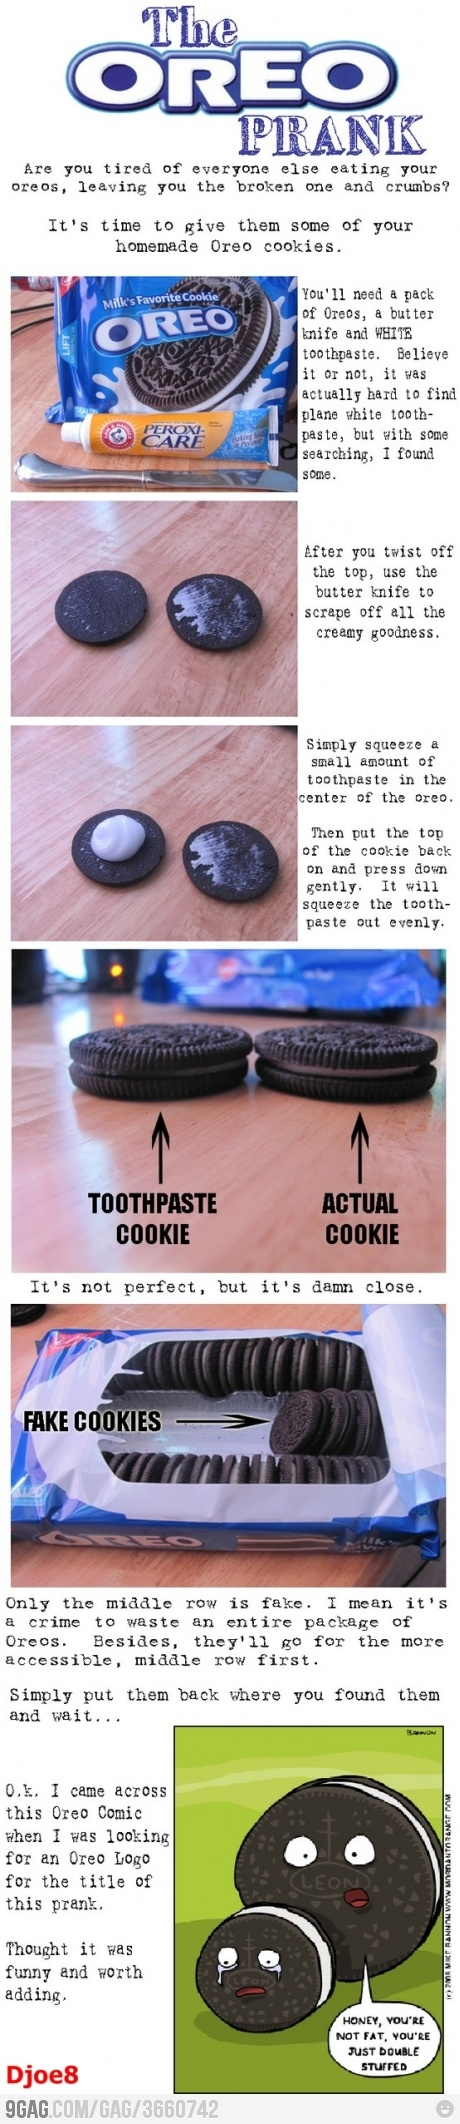 April Fools Day Oreo Prank.